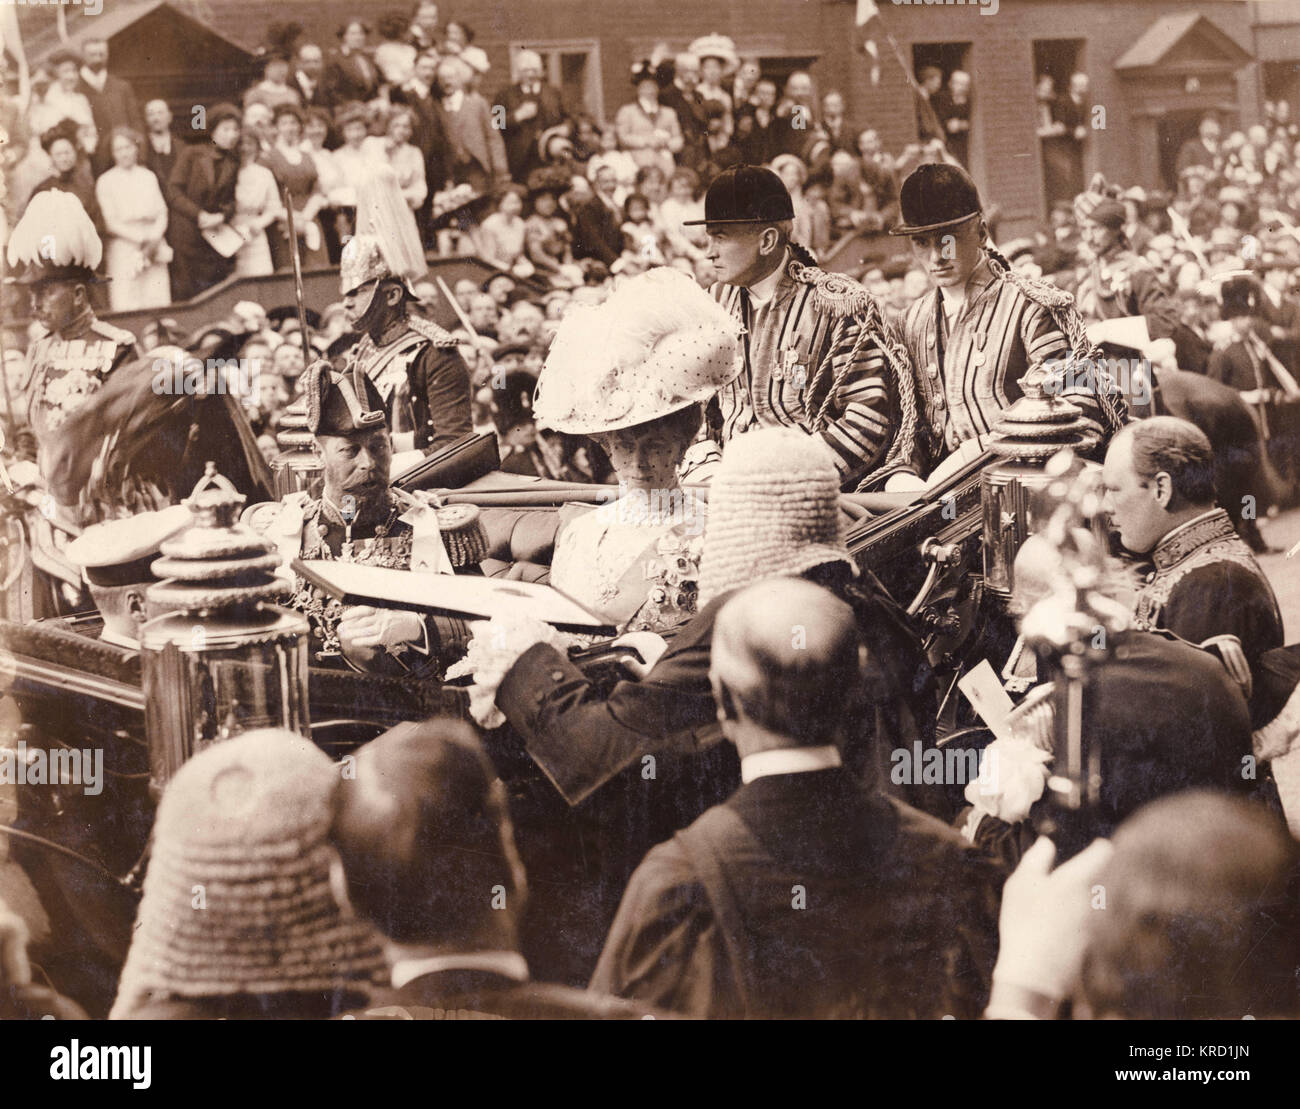 King George V receiving an Address from the Benchers (senior lawyers) at Gray's Inn, London.  Queen Mary sits - Stock Image